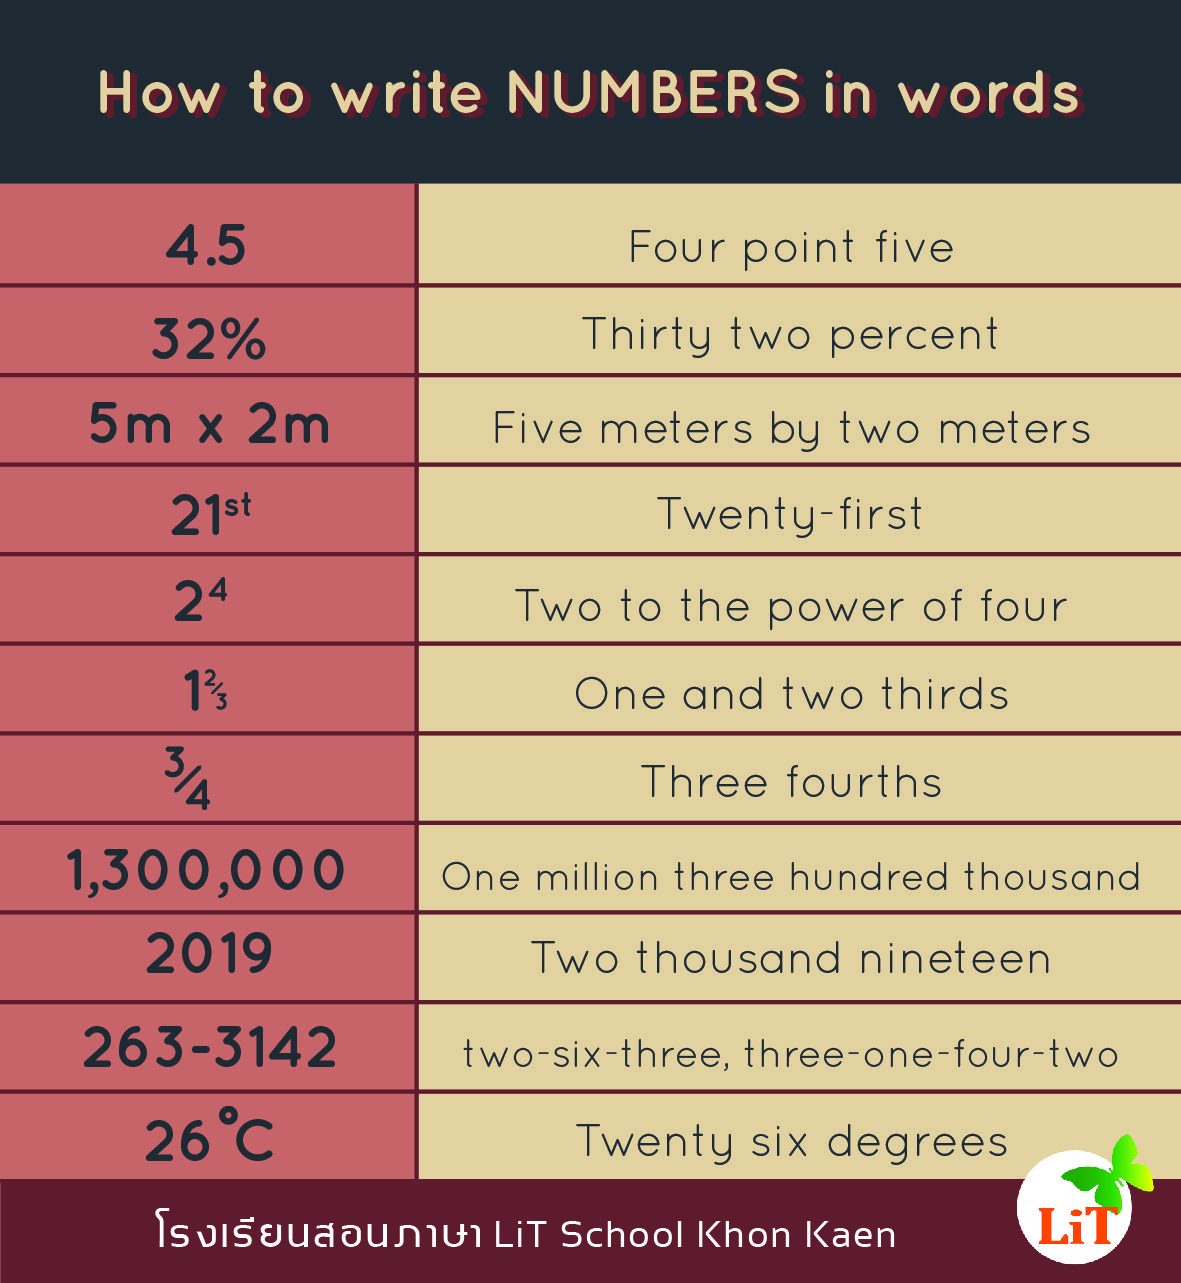 How to write NUMBERS in words  Words, Writing, Education